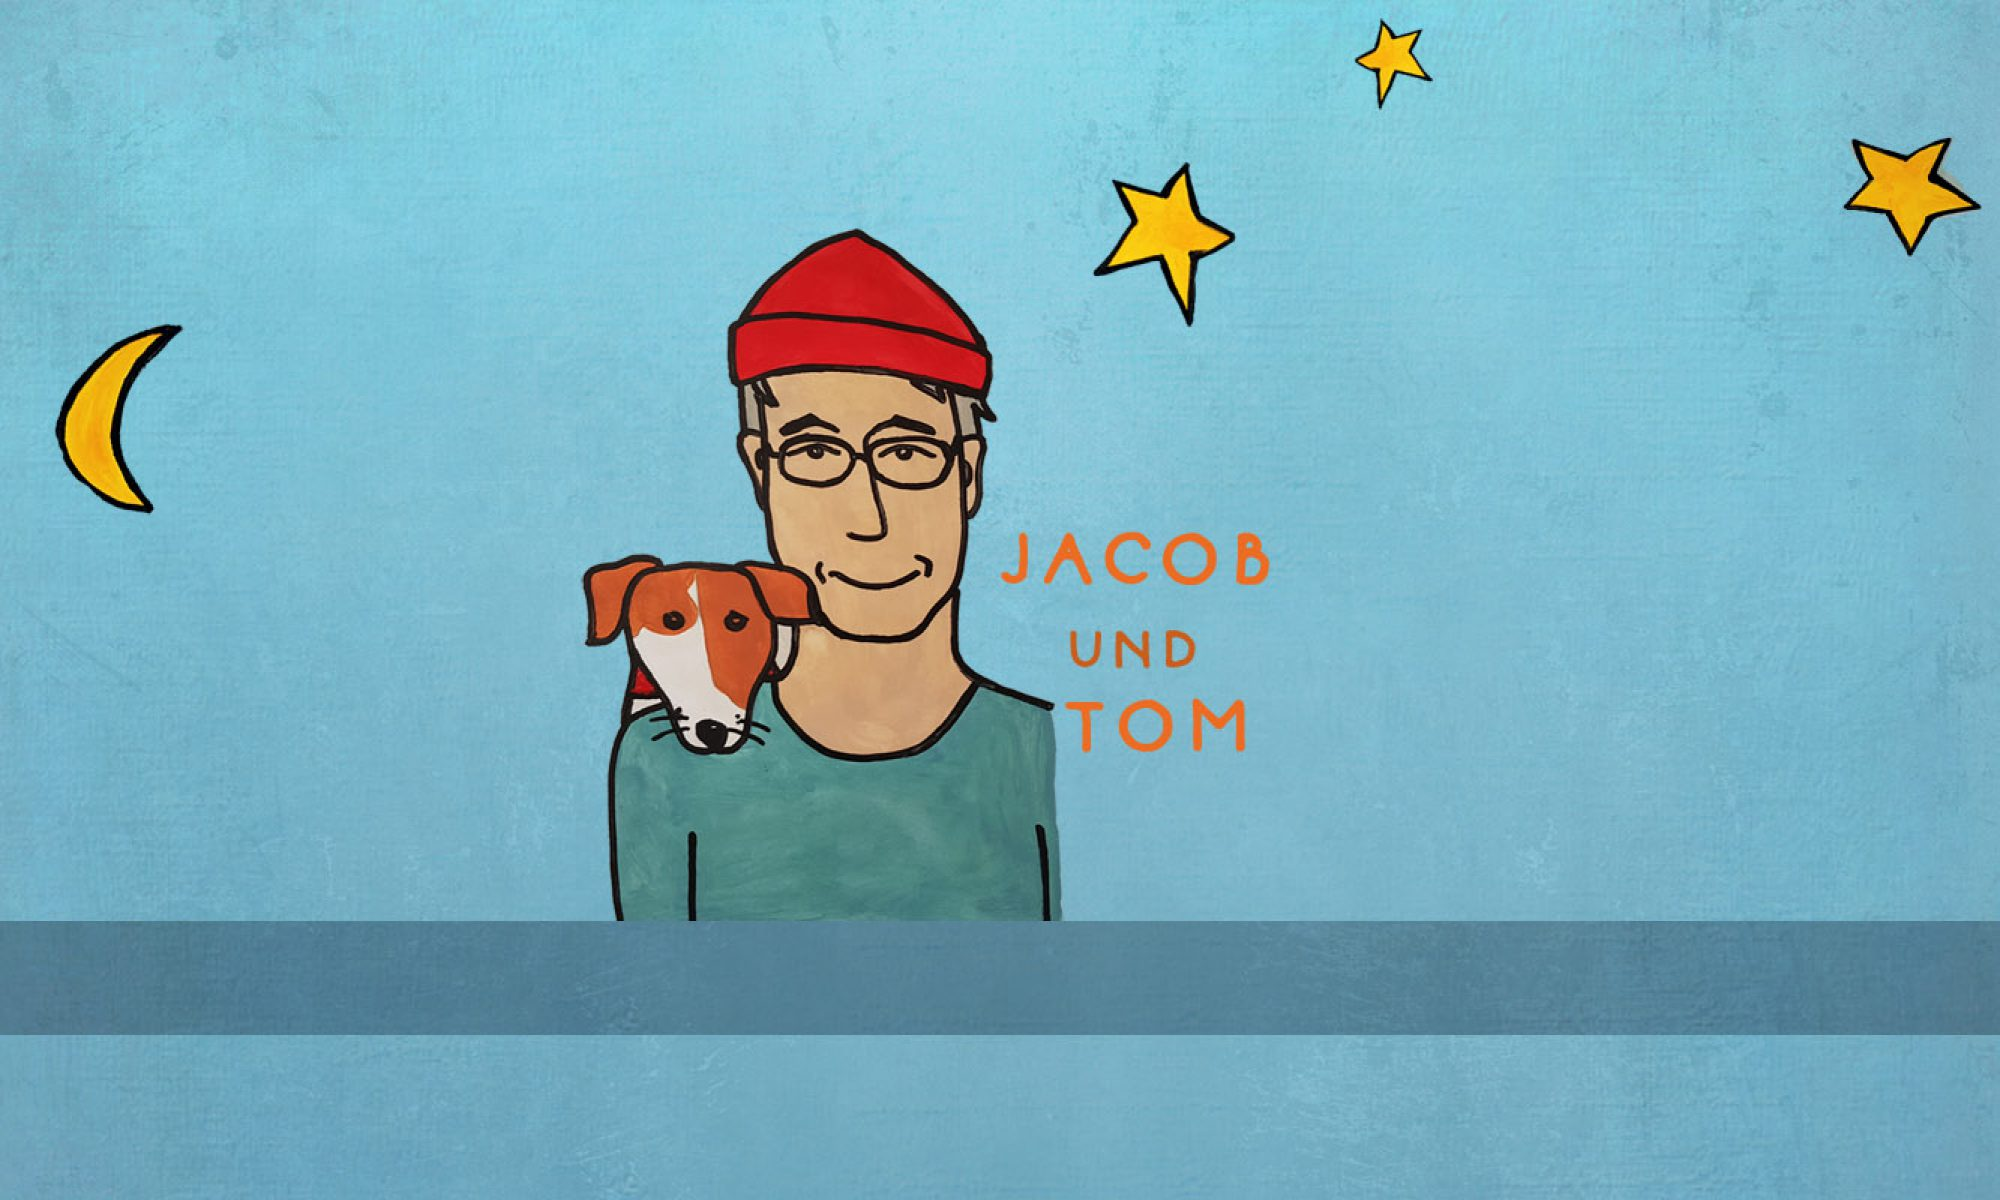 Jacob und Tom